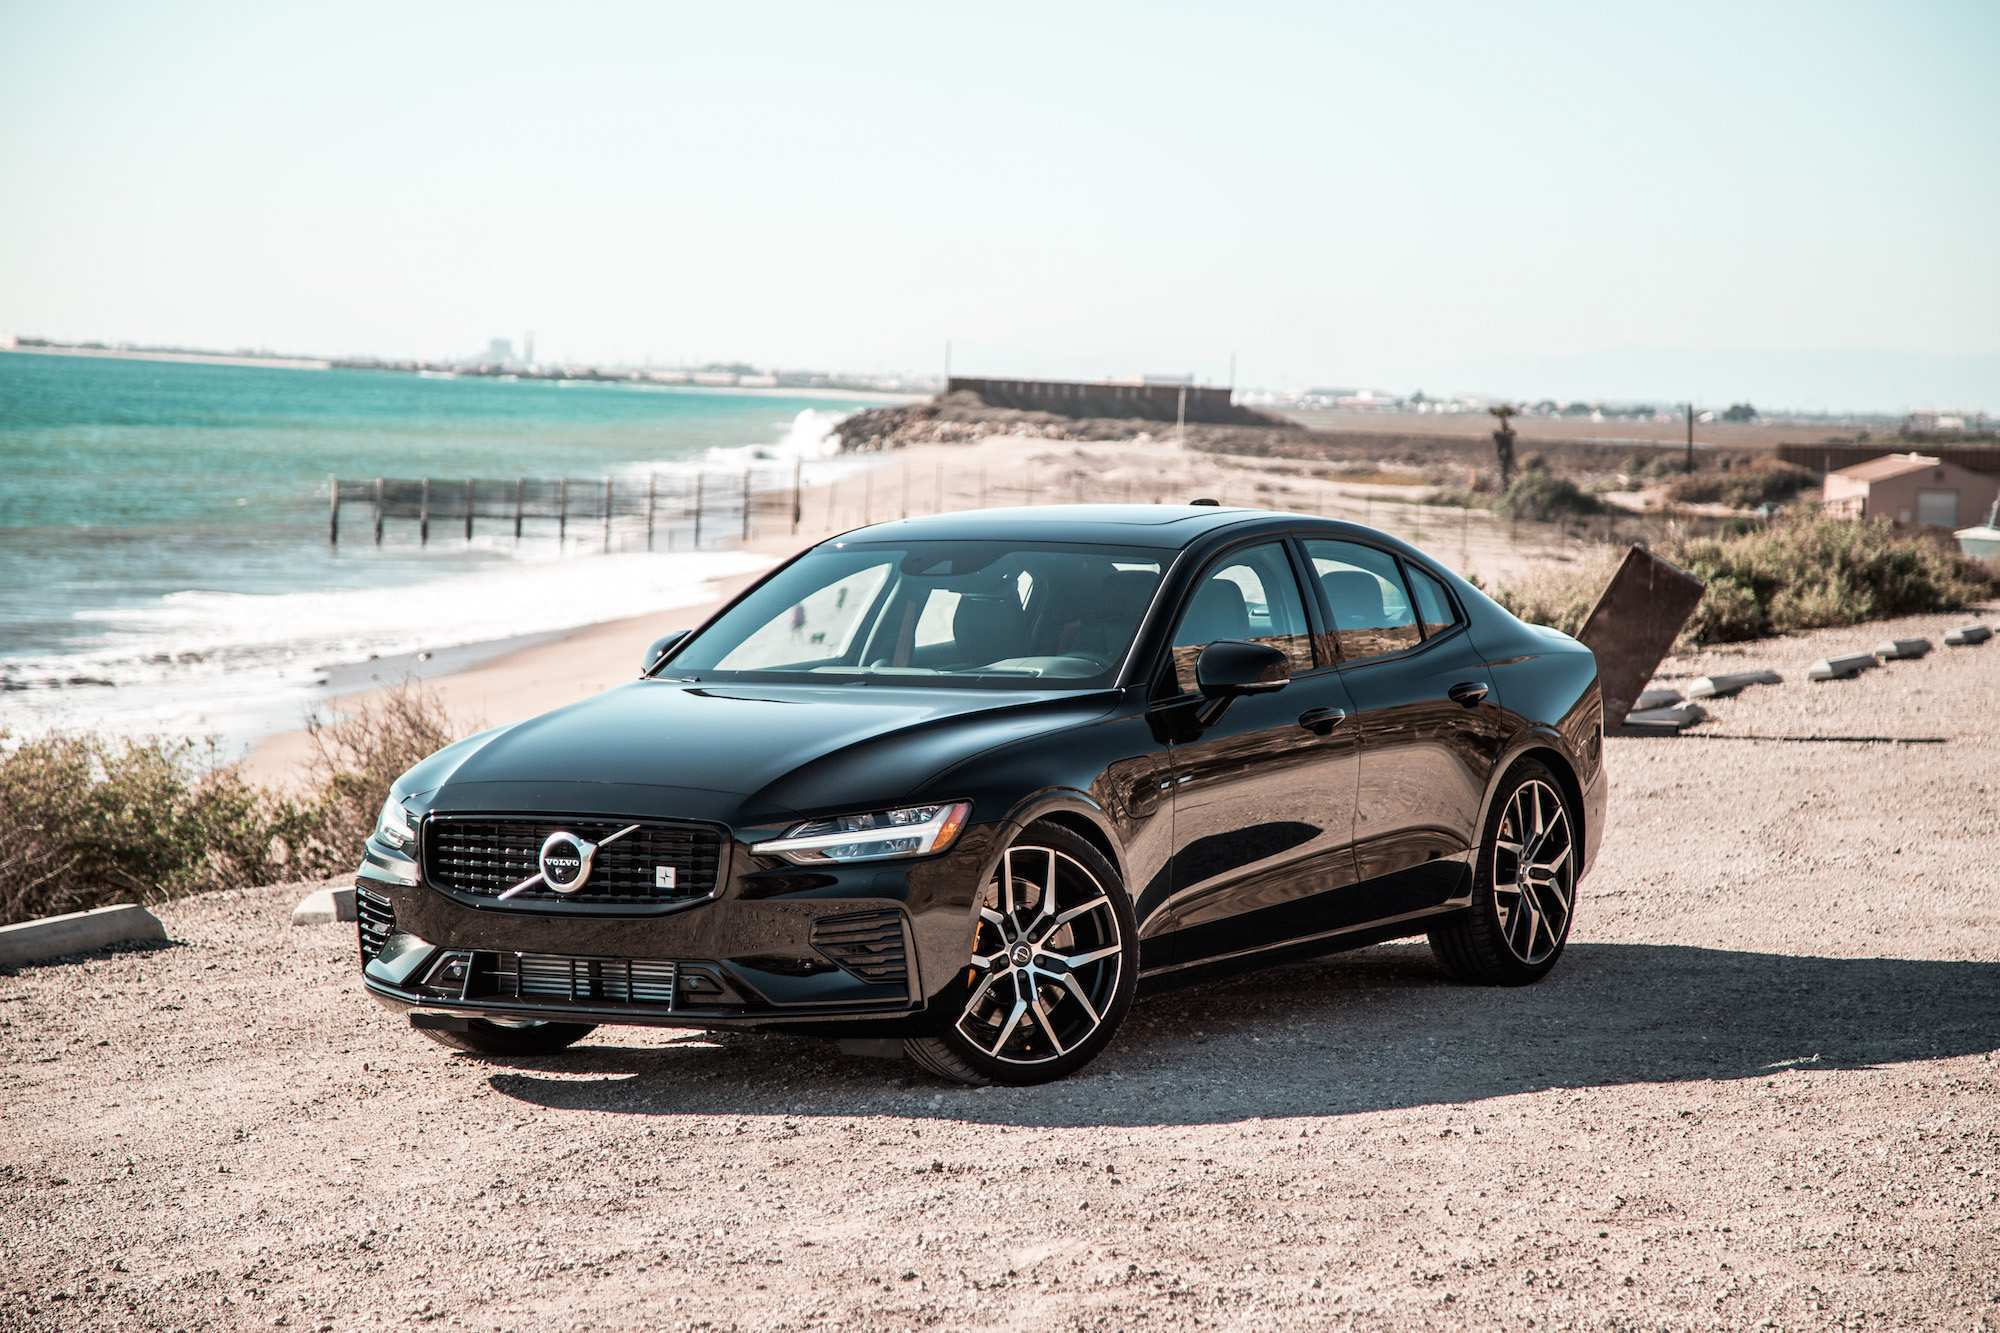 69 Great 2020 Volvo S60 R Images for 2020 Volvo S60 R